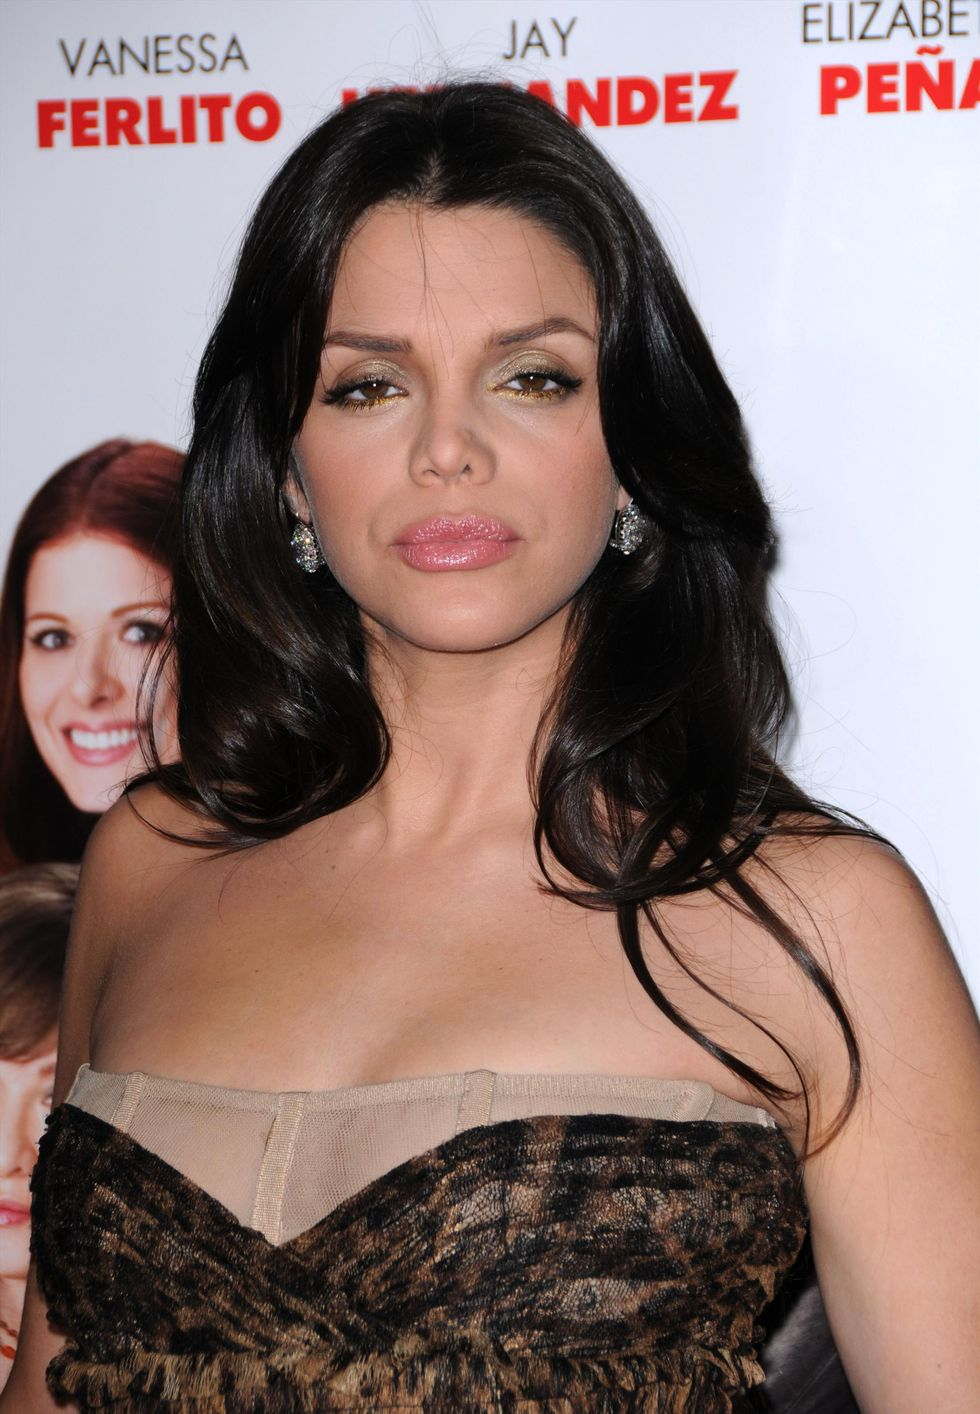 vanessa-ferlito-nothing-like-the-holidays-premiere-in-hollywood-01